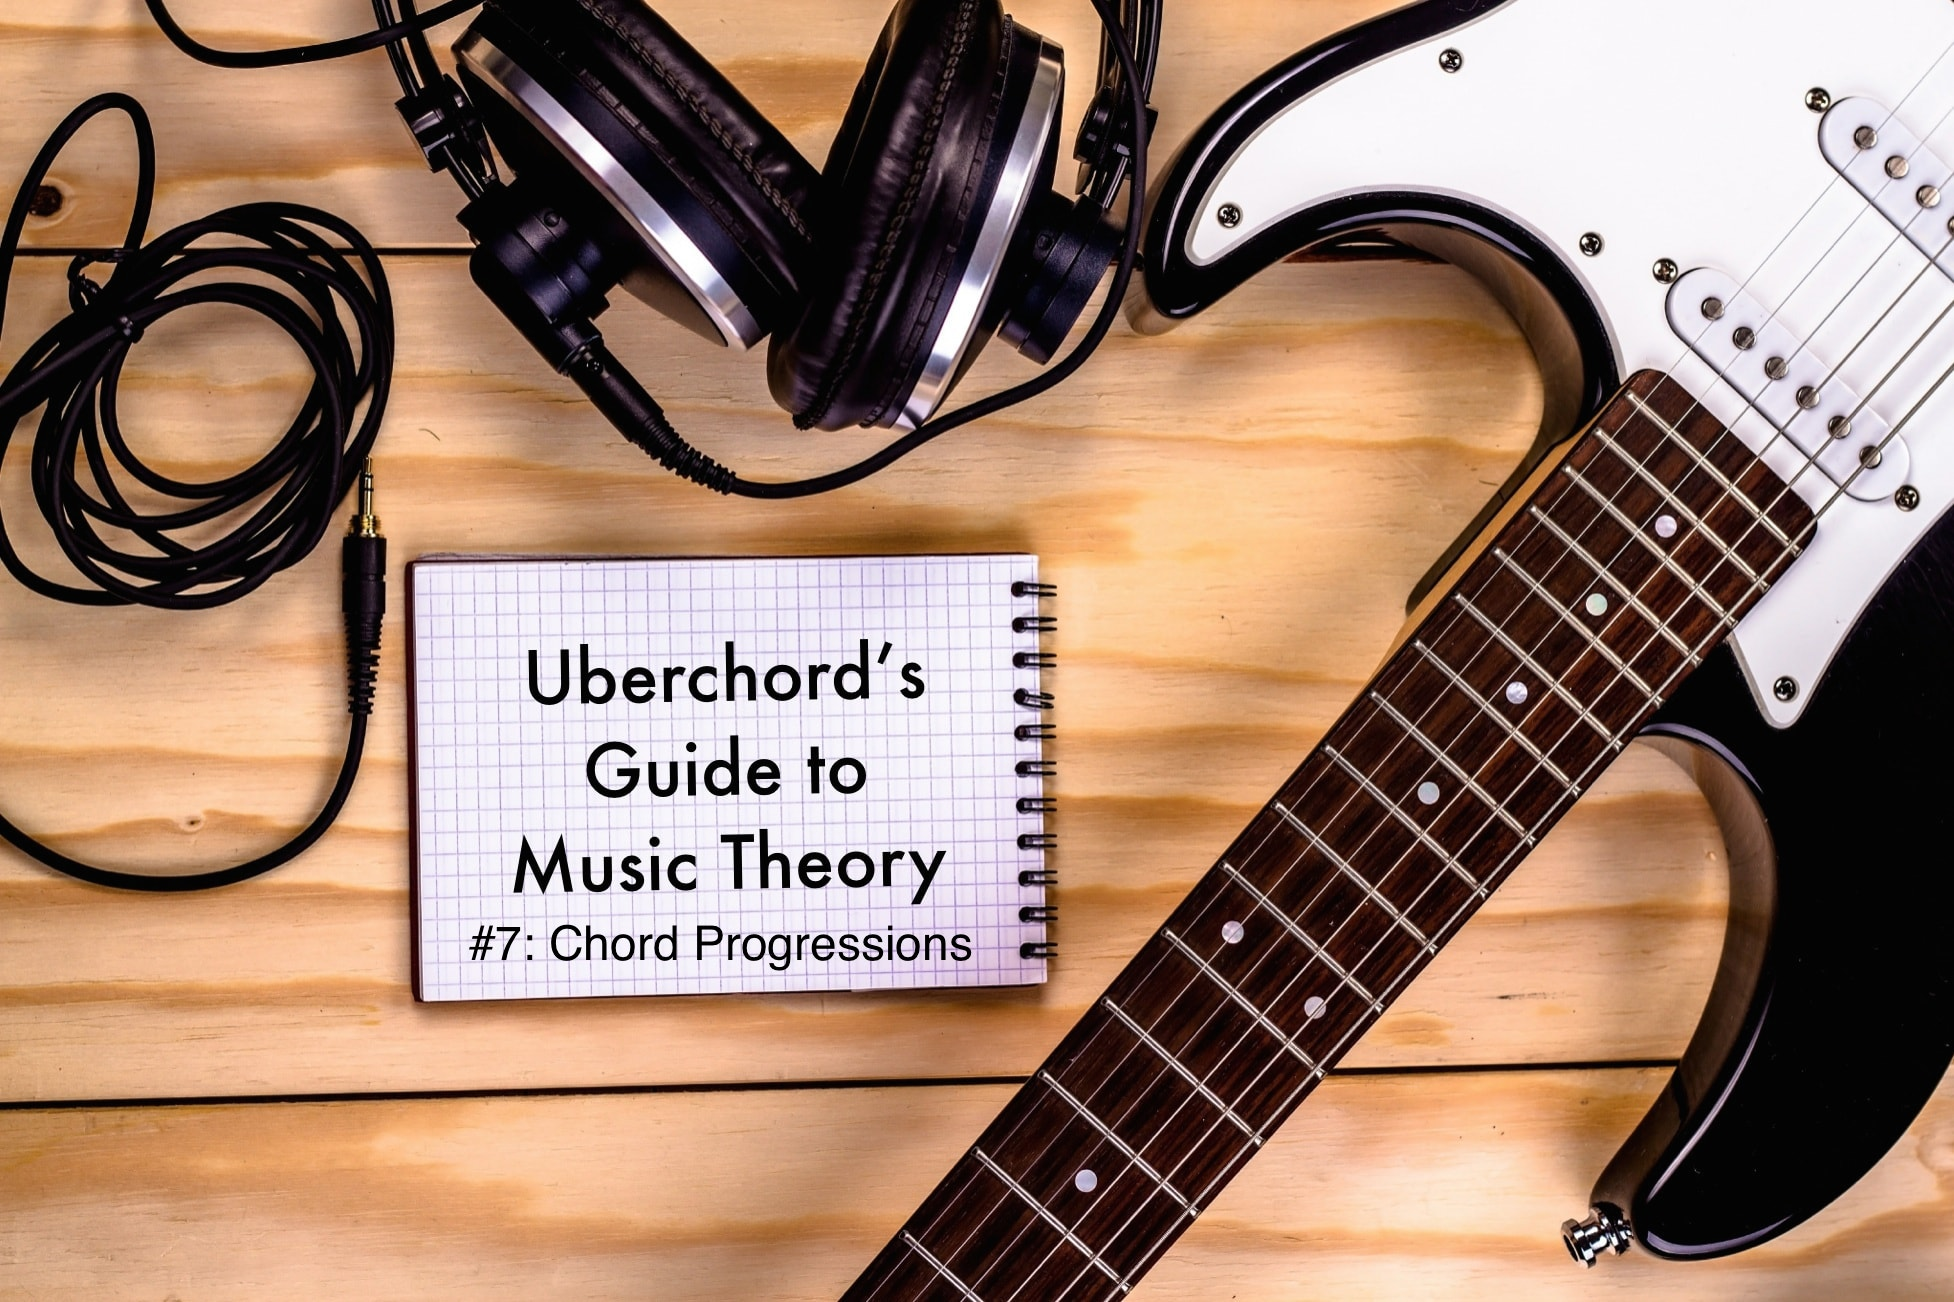 Extended Guitar Chords How To Play The 9th 11th And 13th Chords